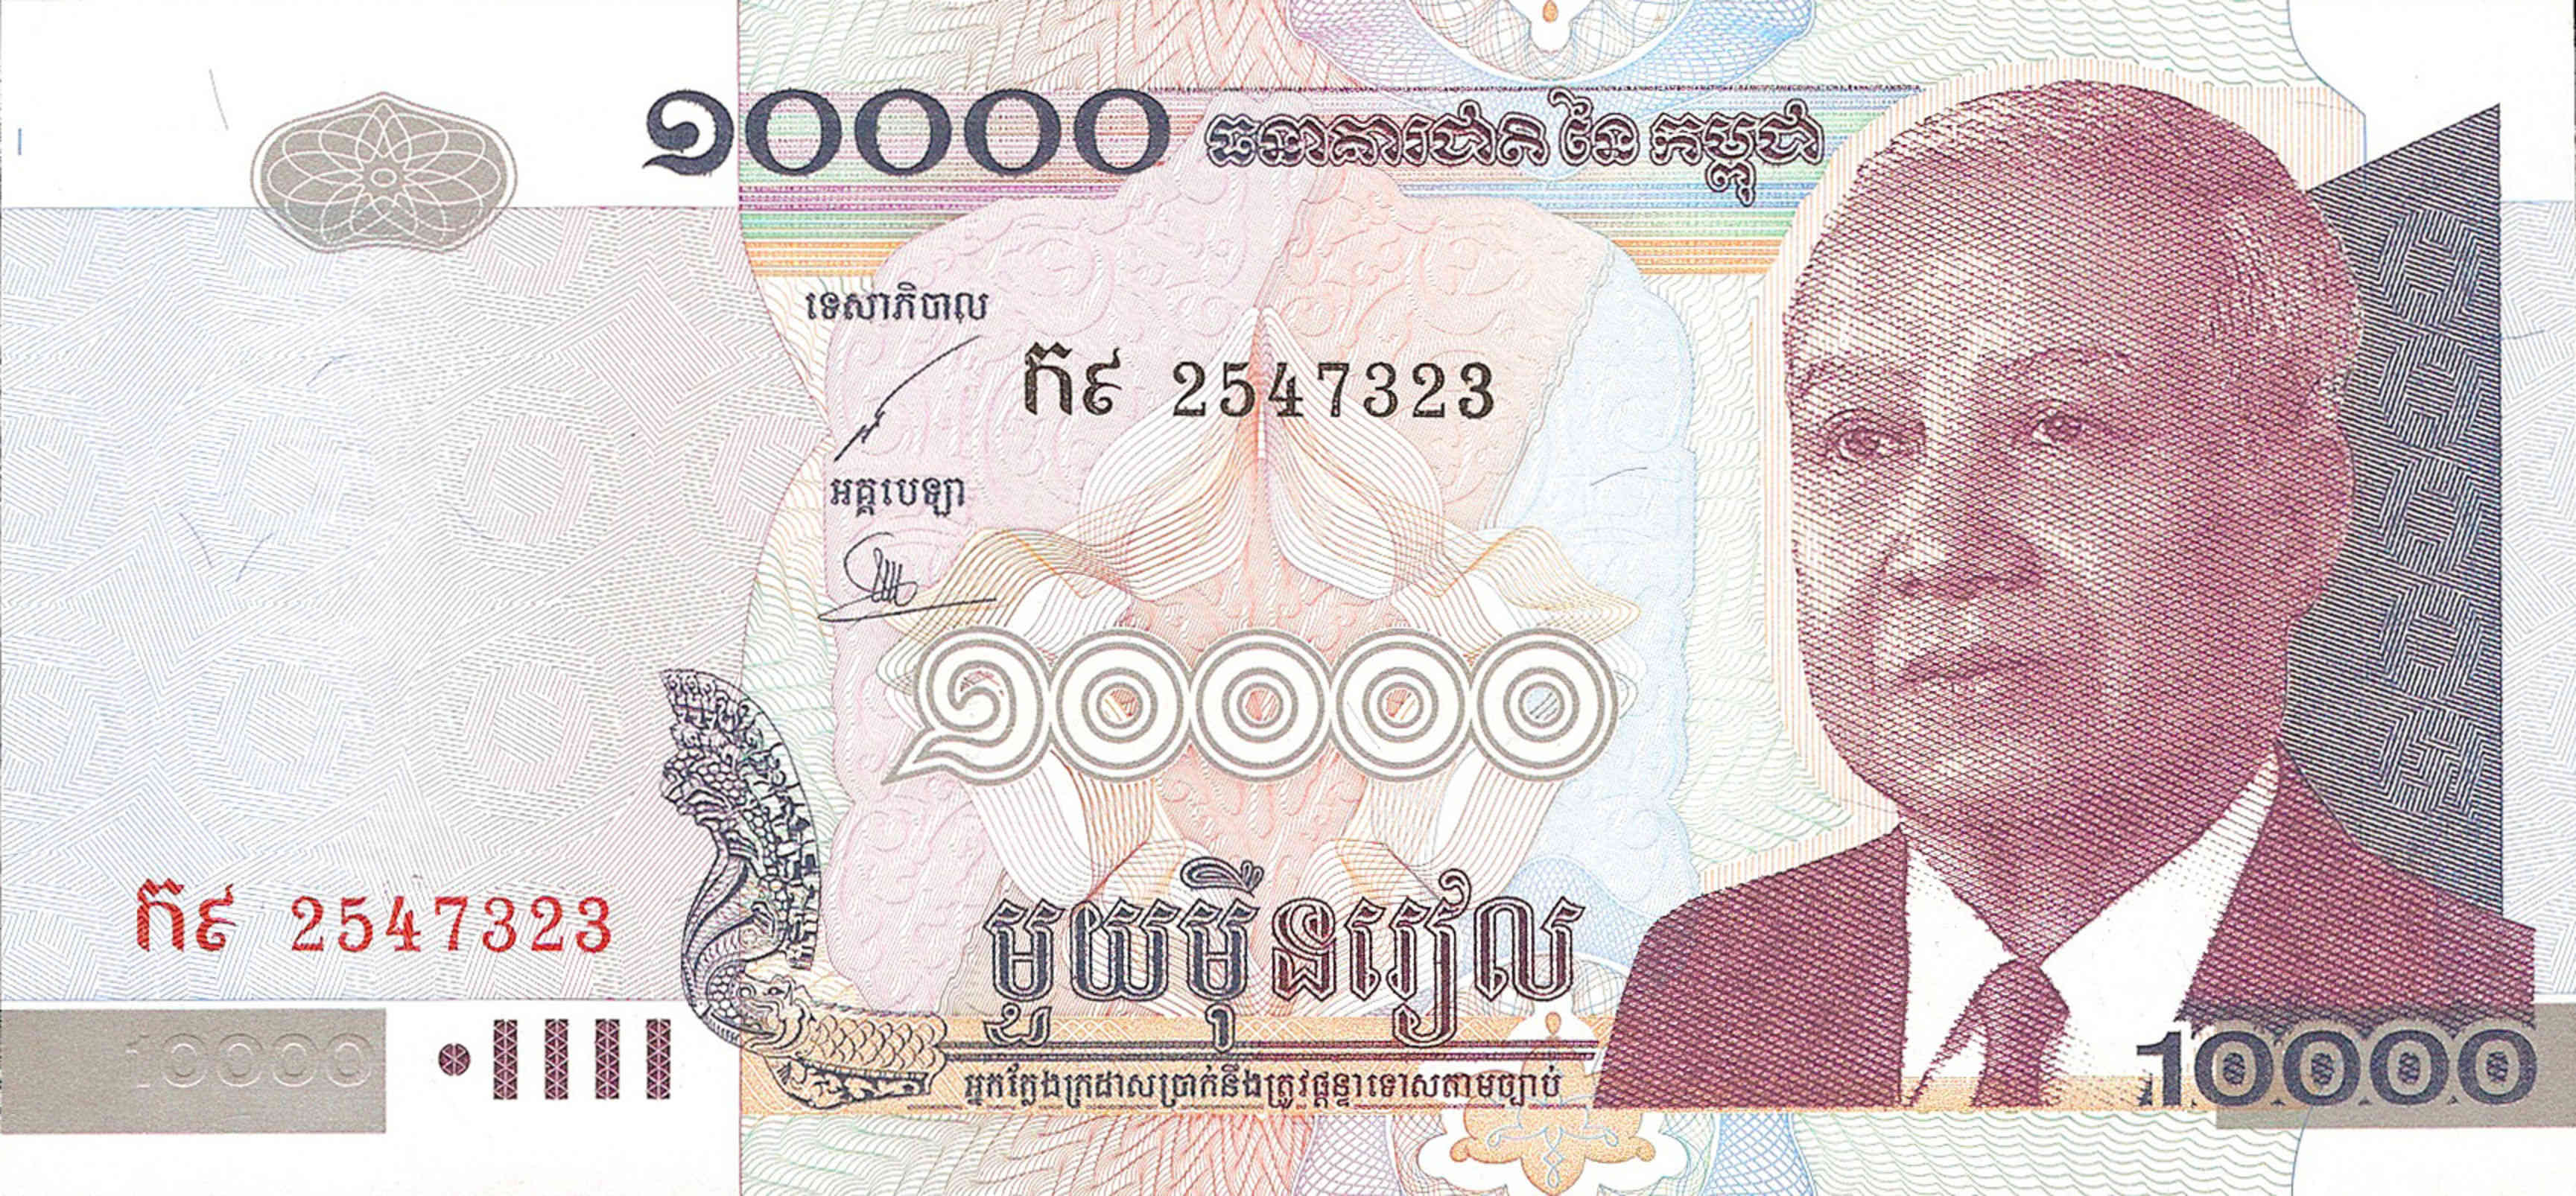 Cambodia 10 000 Riels 2005 Unc New Date Coins Paper Money Other Paper Money Of The World Ihslyrics Com